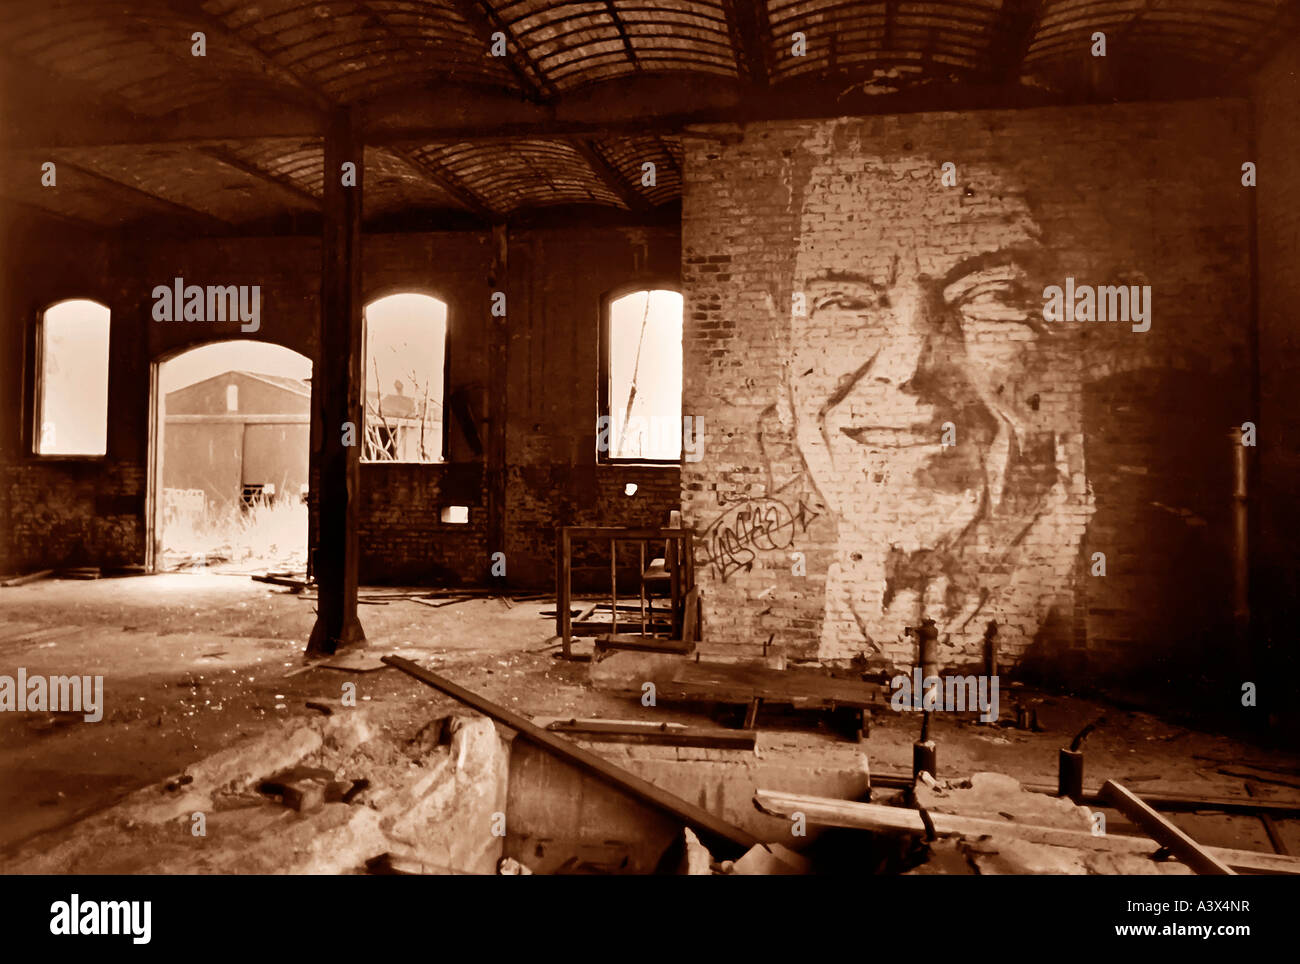 Portrait of former U S President Ronald Reagan painted on a wall inside an abandoned railroad hangar northest Pennsylvania - Stock Image